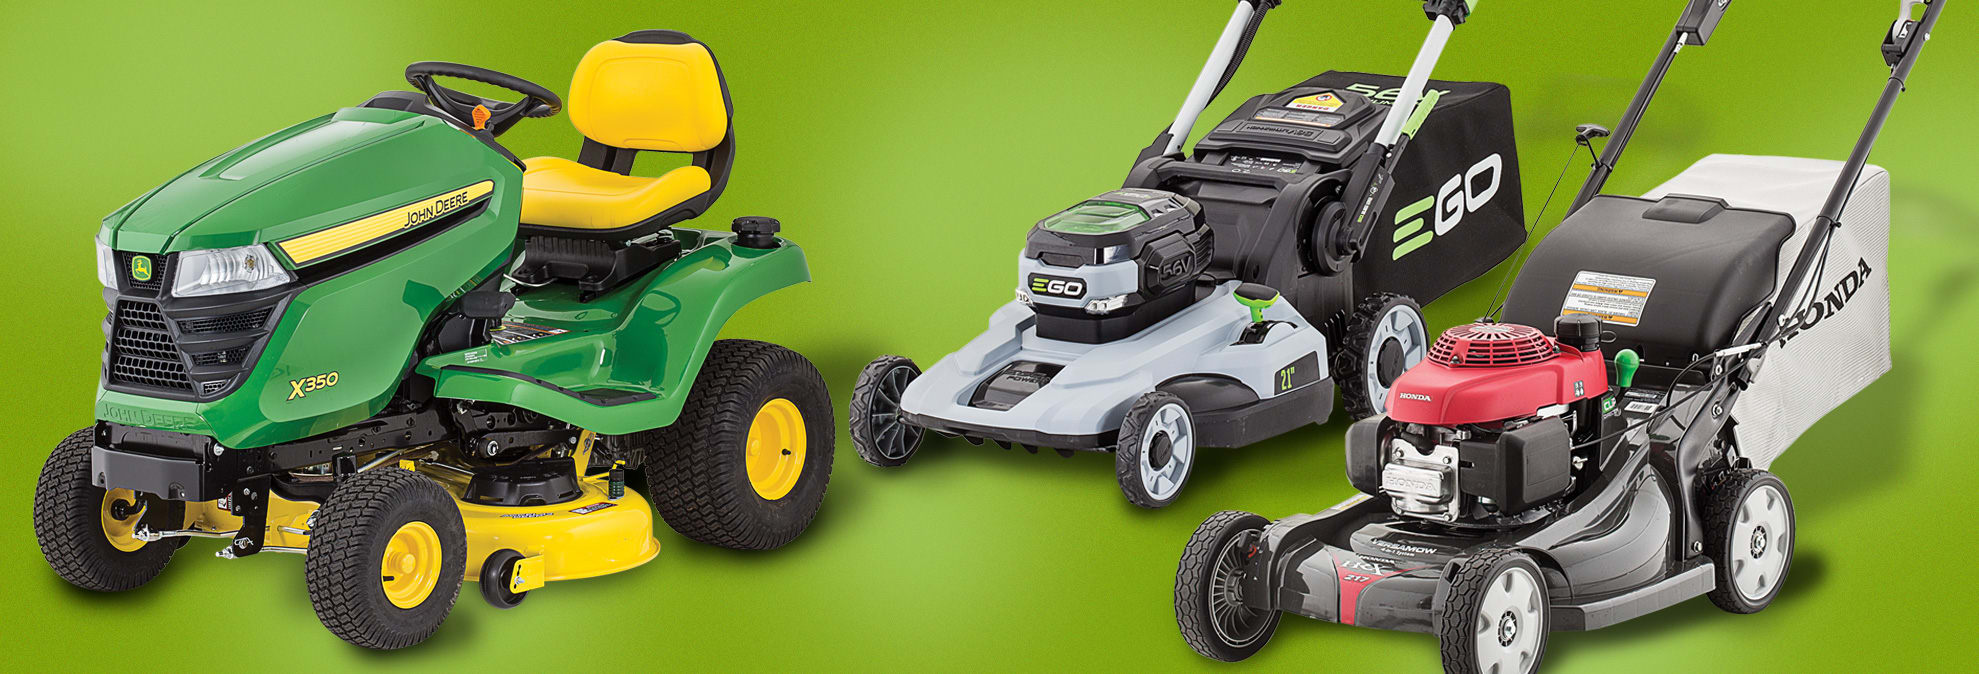 Find The Right Lawn Mower Type For Your Yard Consumer